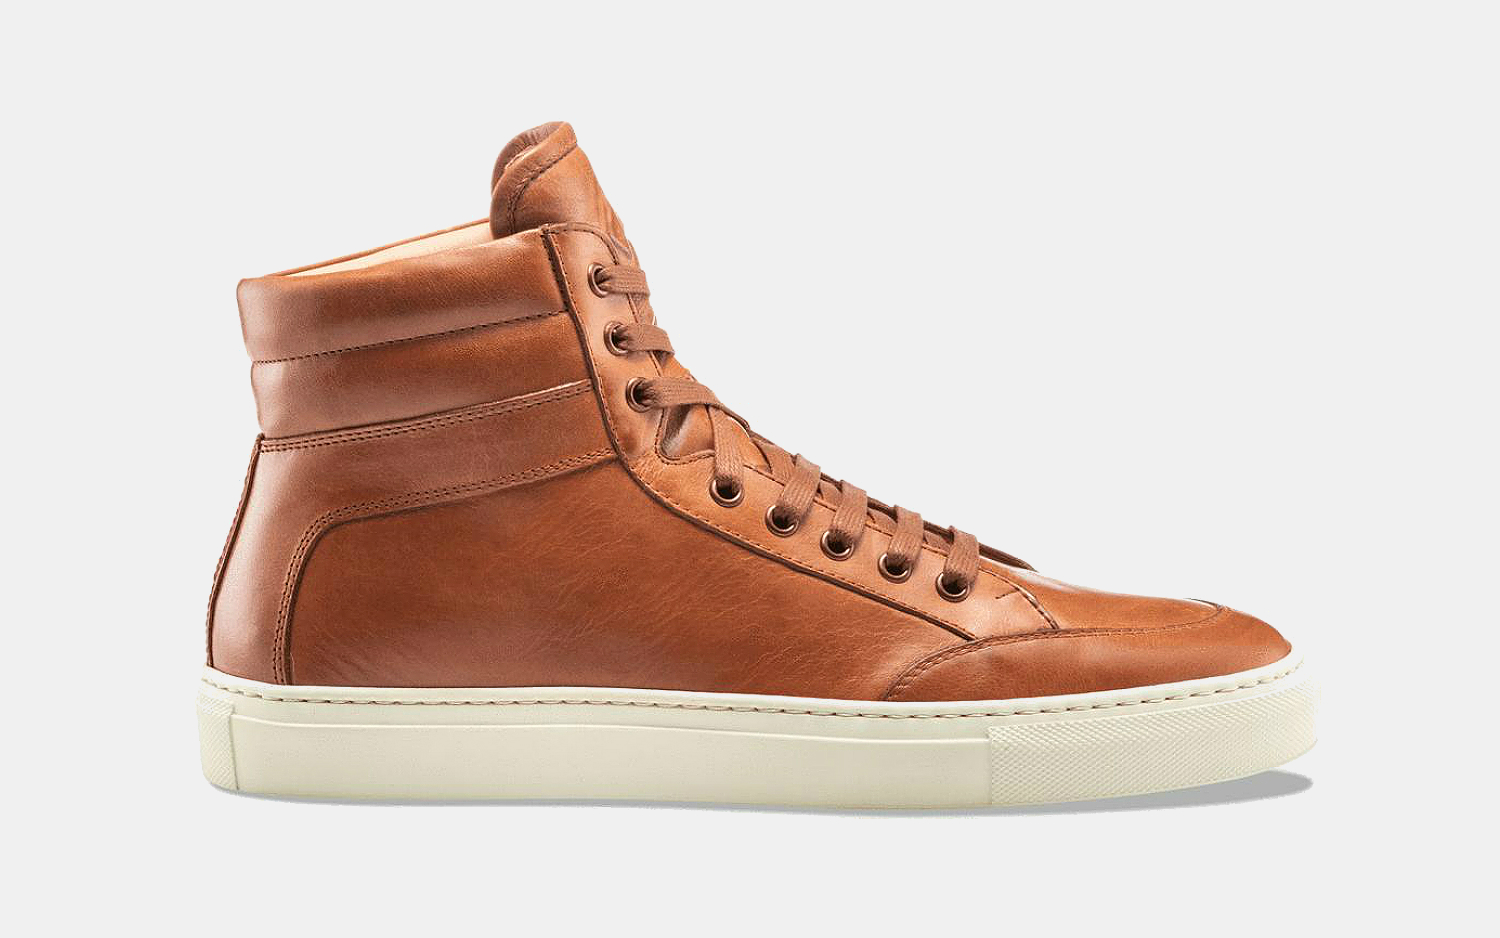 Koio Primo Castagna Hightop Sneakers